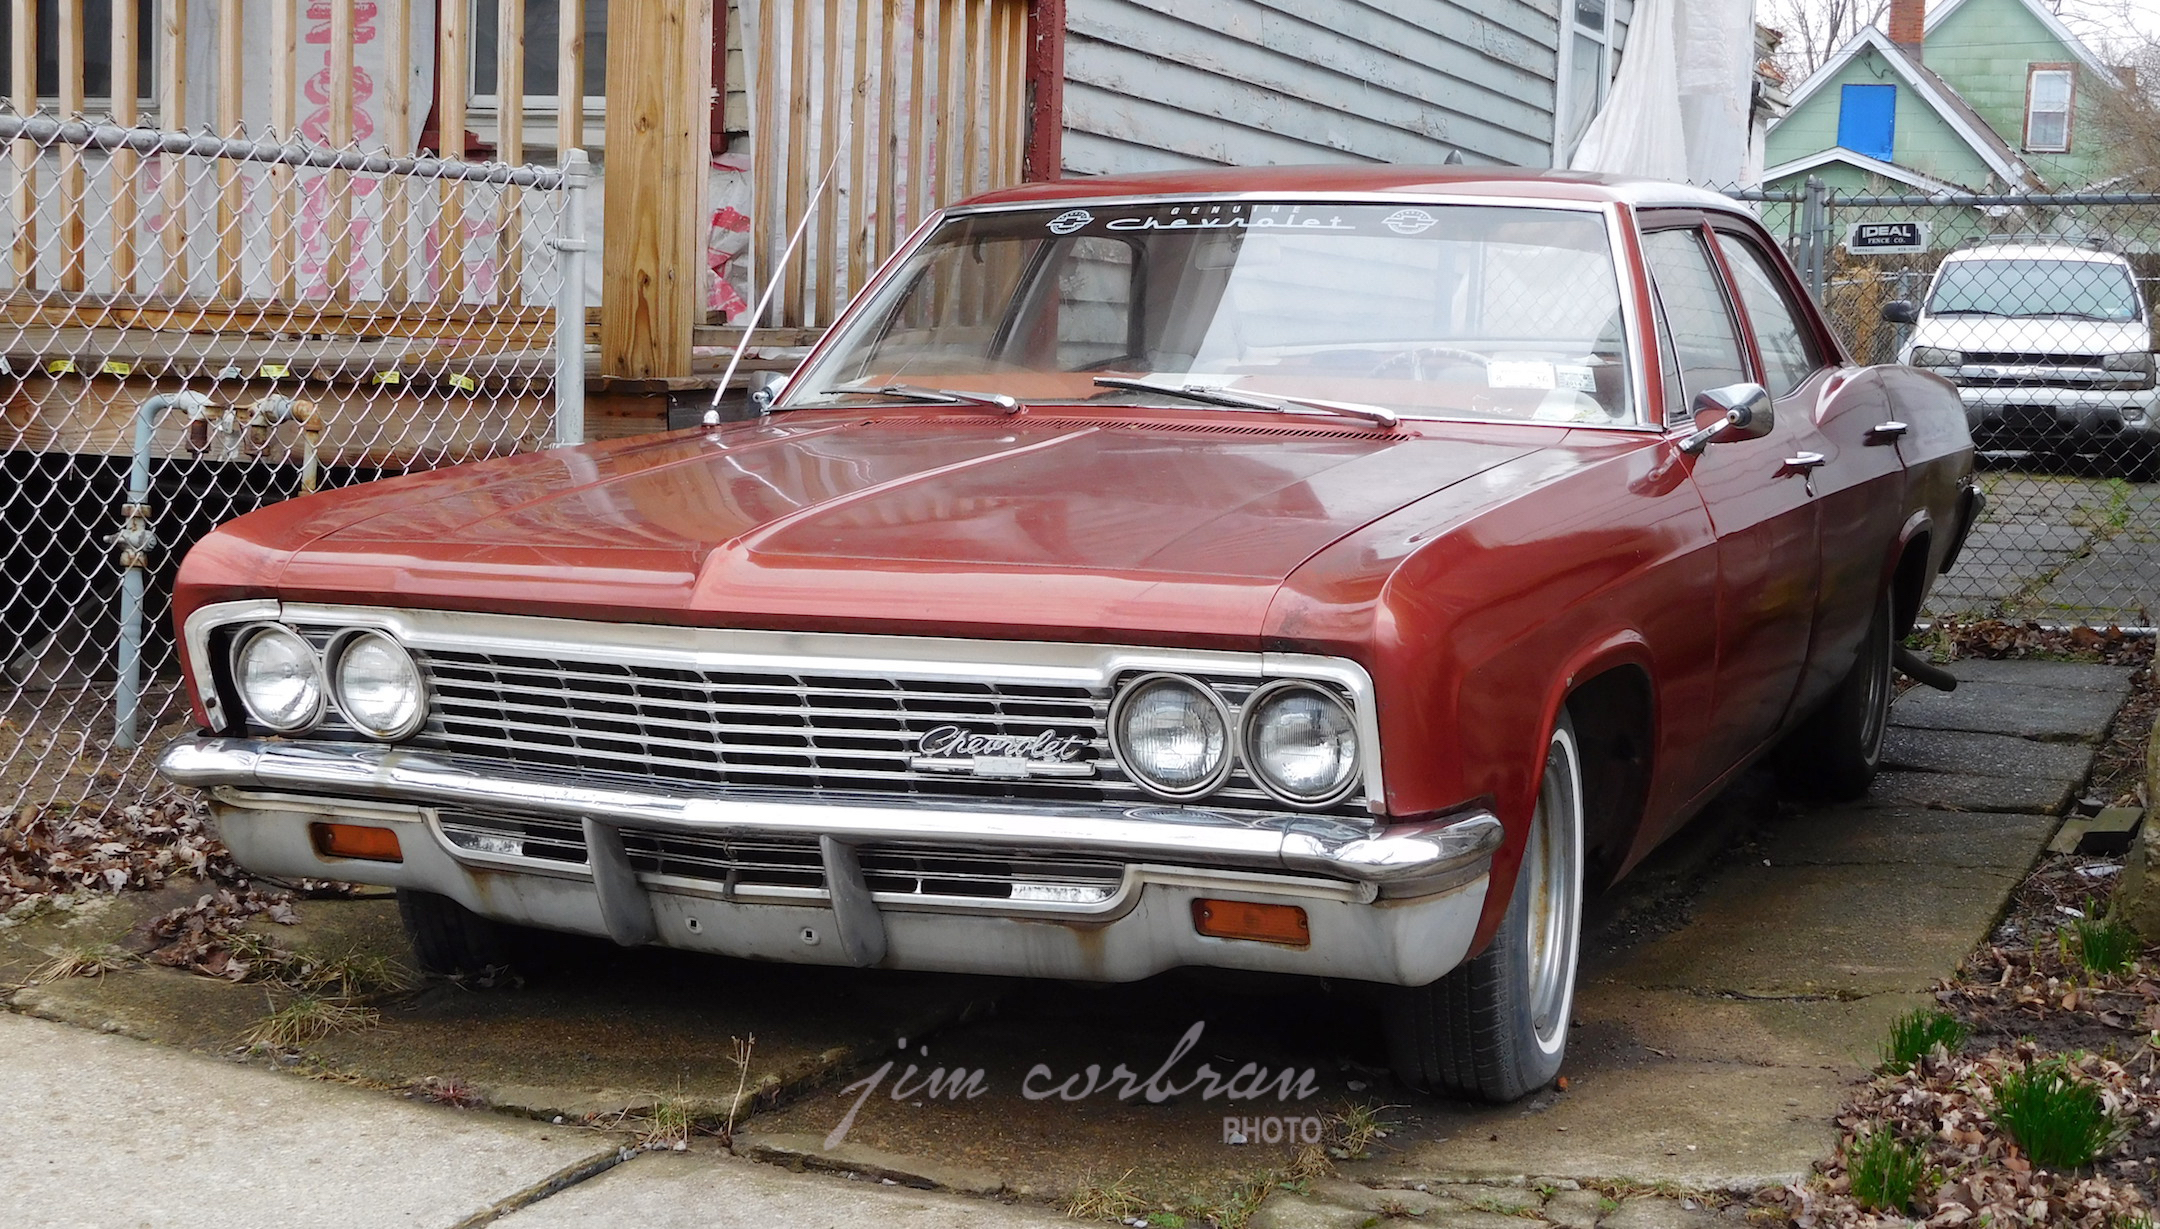 RealRides of WNY - 1966 Chevy Bel Air